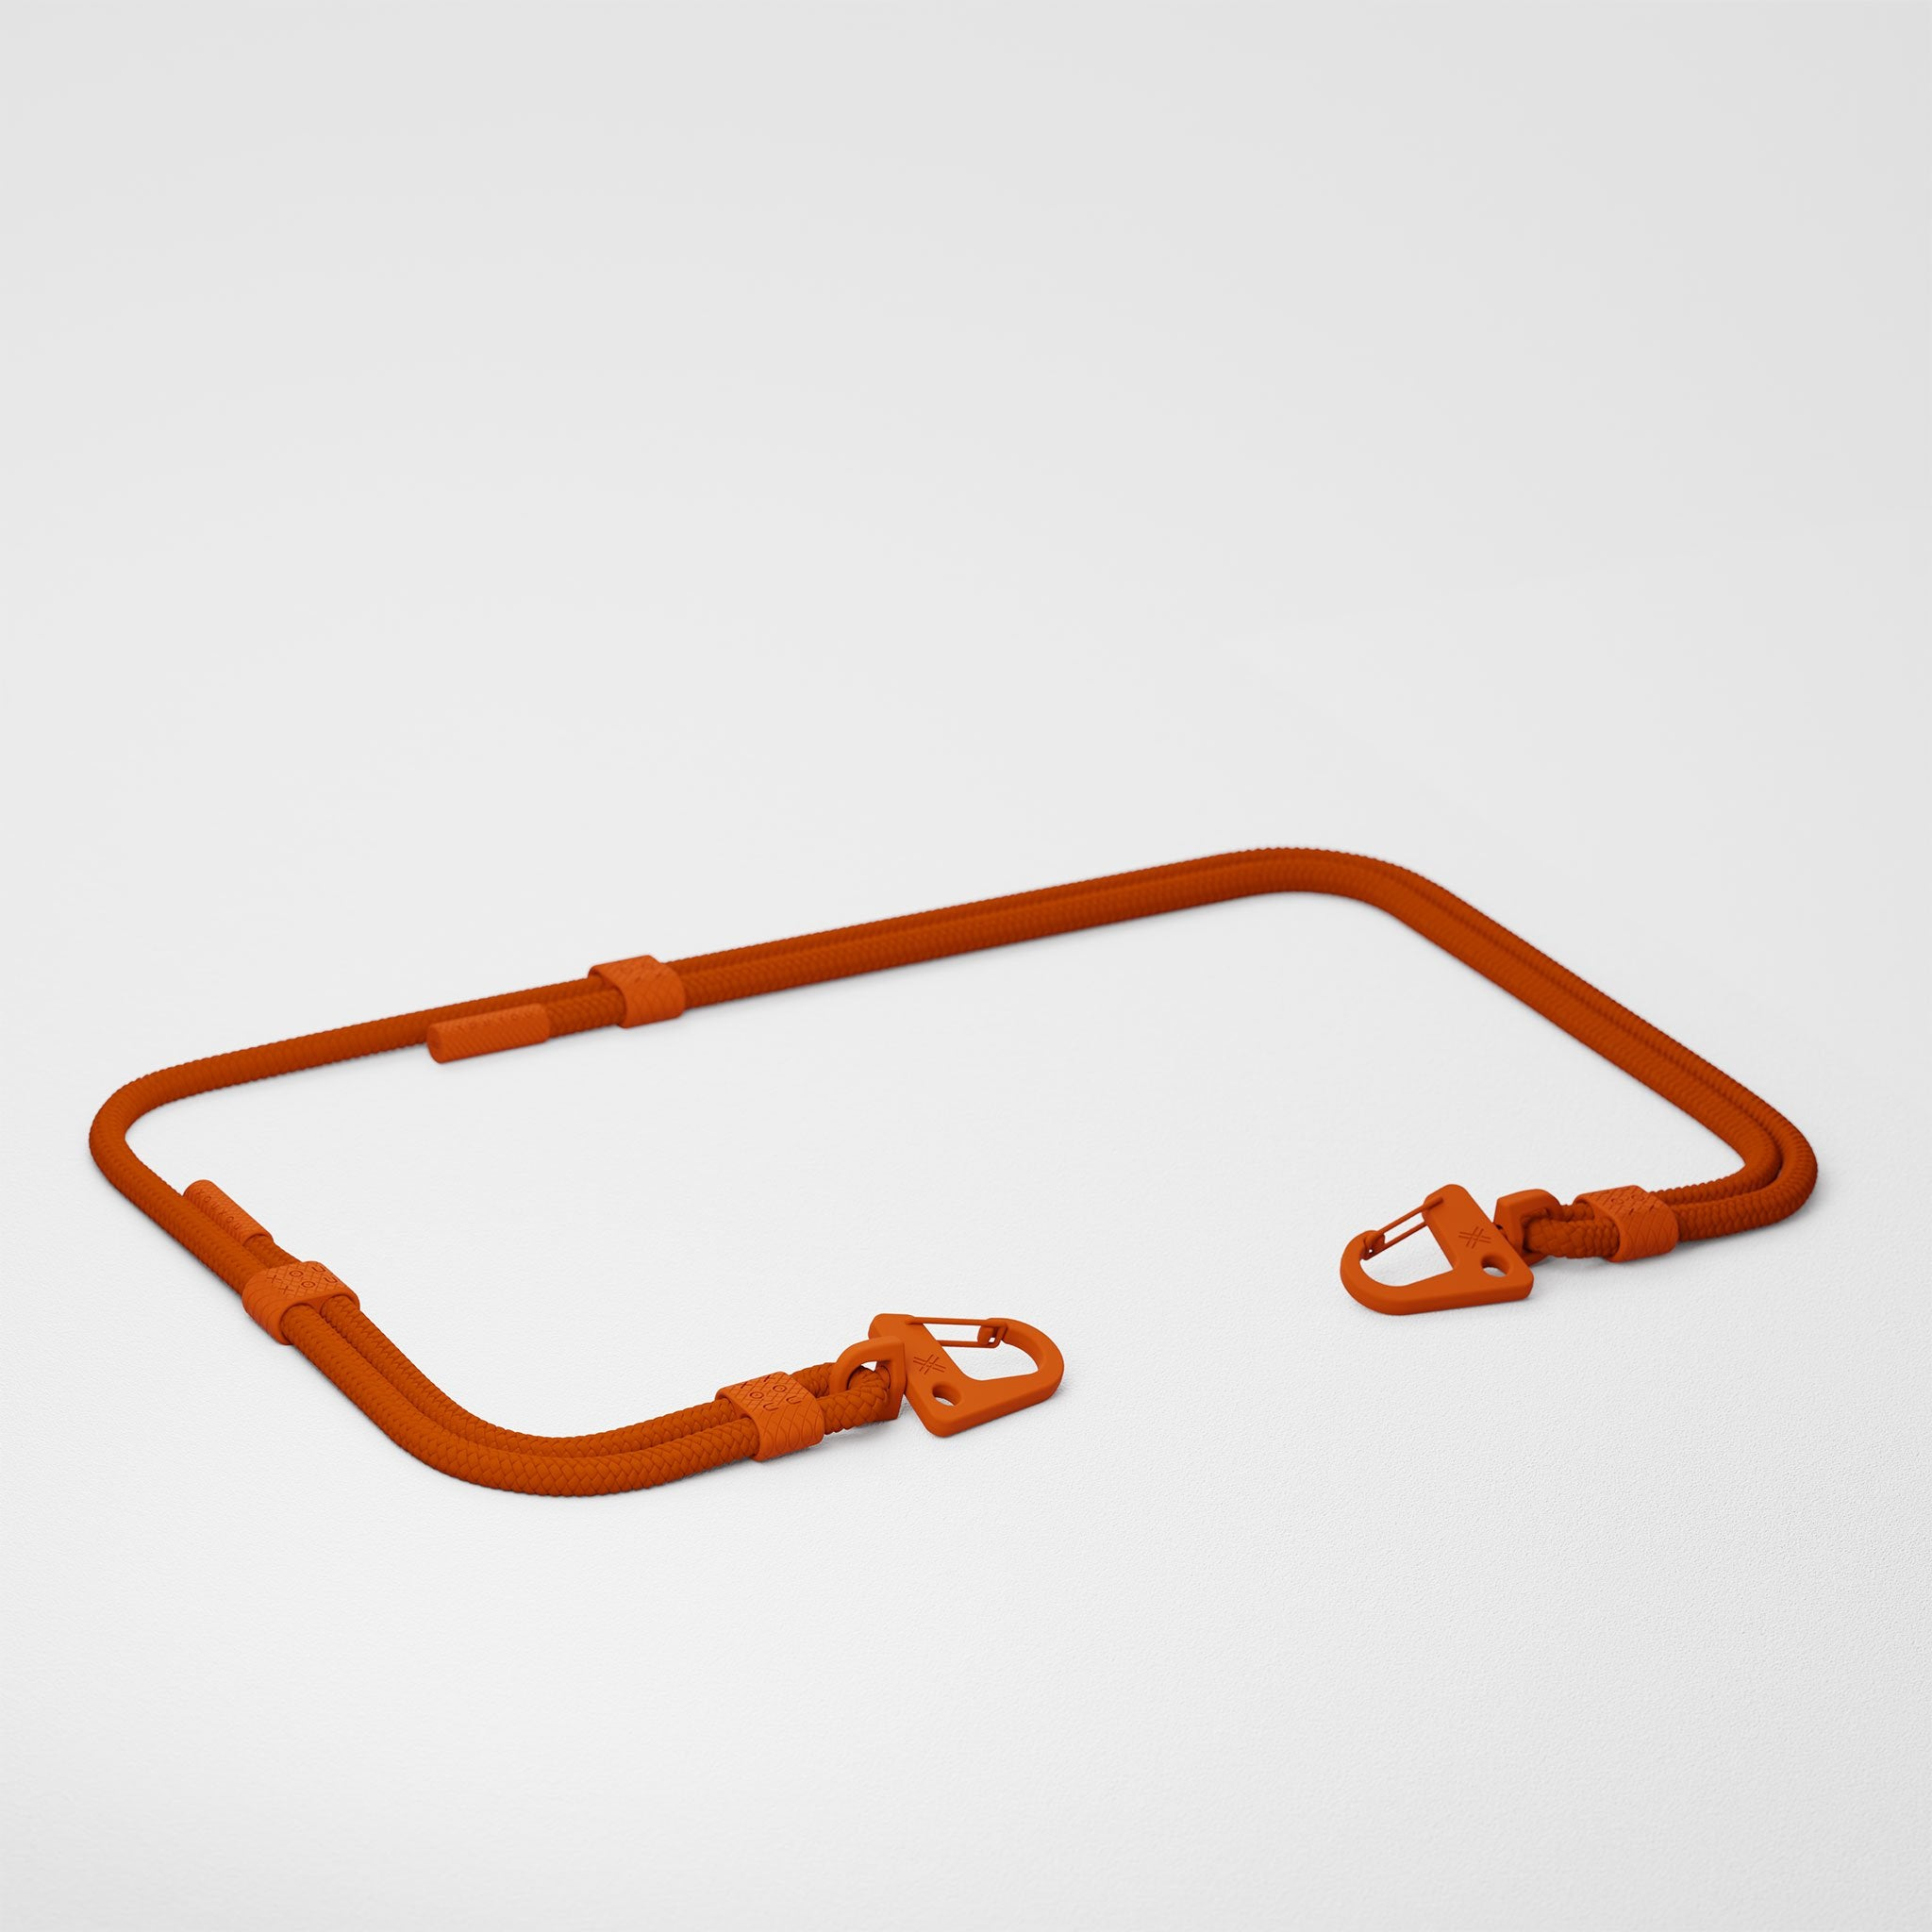 Rusty Red Carabiner Rope